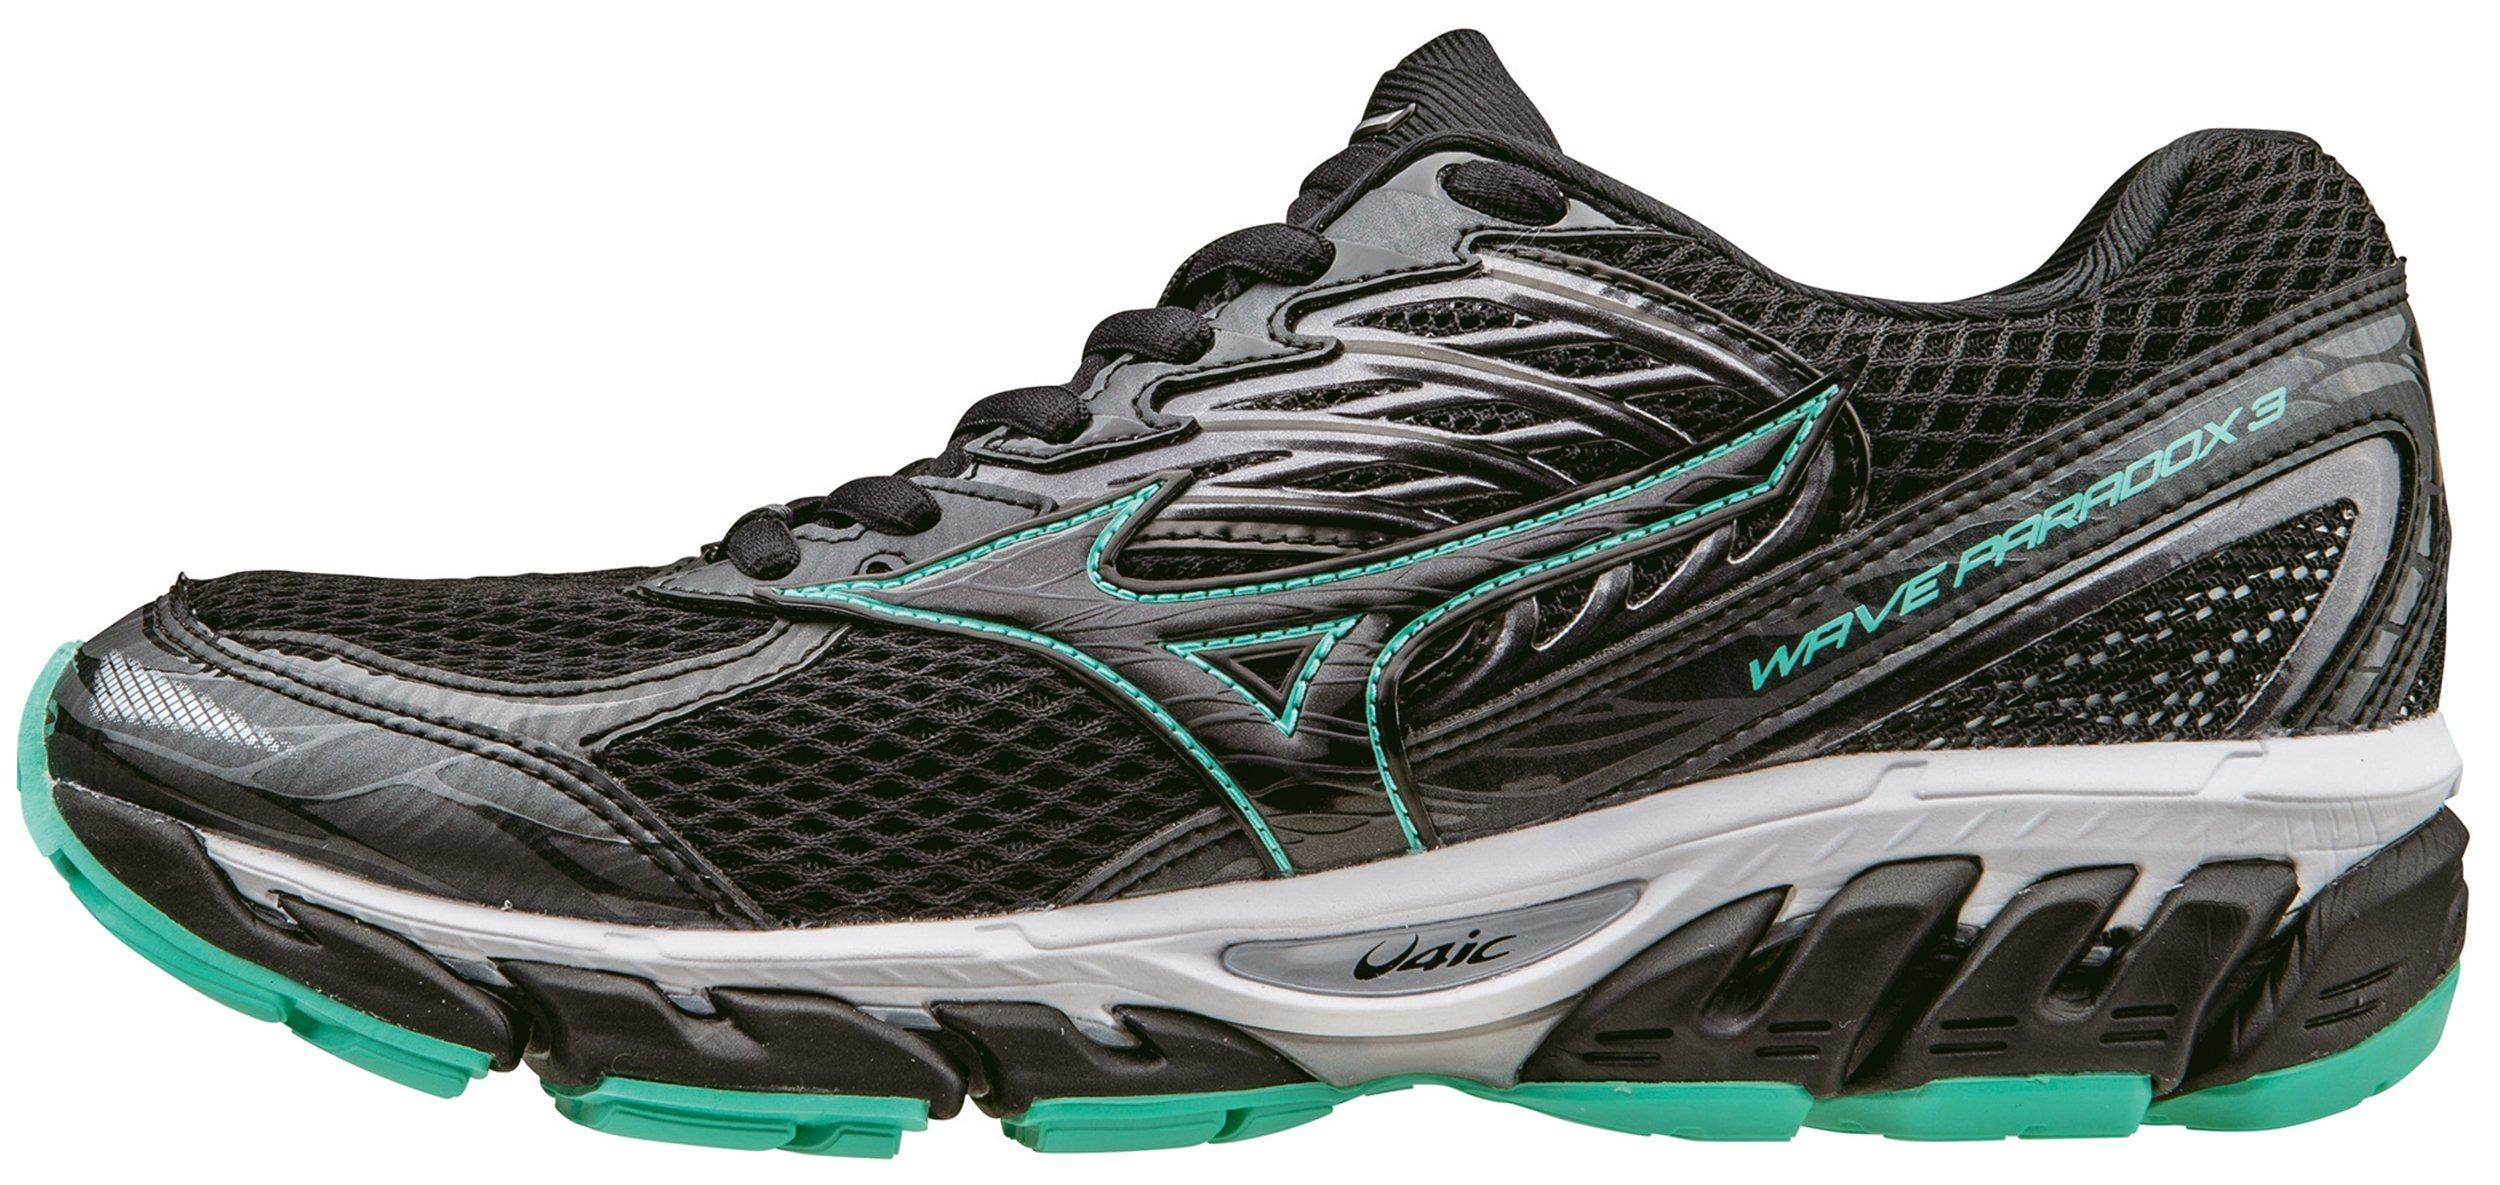 Mizuno Wave Paradox 3 Find Great For Sale Discount Brand New Unisex Buy Cheap Low Shipping Fee lysZ6u